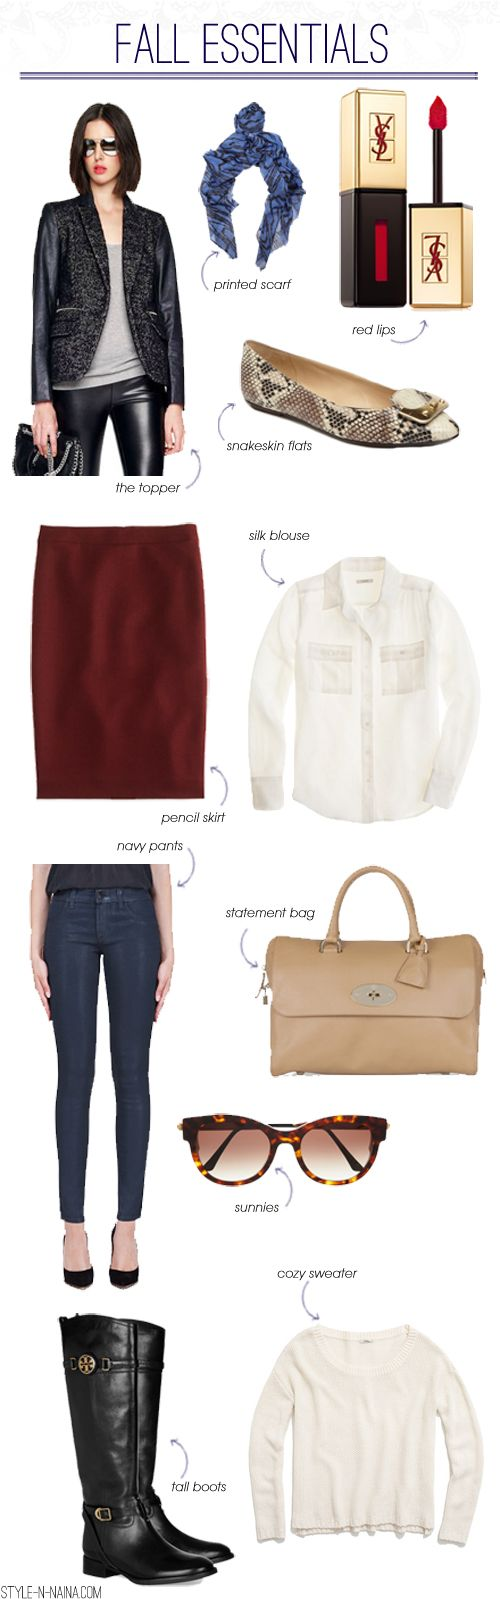 FALL ESSENTIALS | STYLE'N: Fall Style, Fall Wins, Fall I Fall, Essential Wardrobes, Fall Fashion, Basic Fall, Fall Fall, Fashio Clothing, Fall Essential